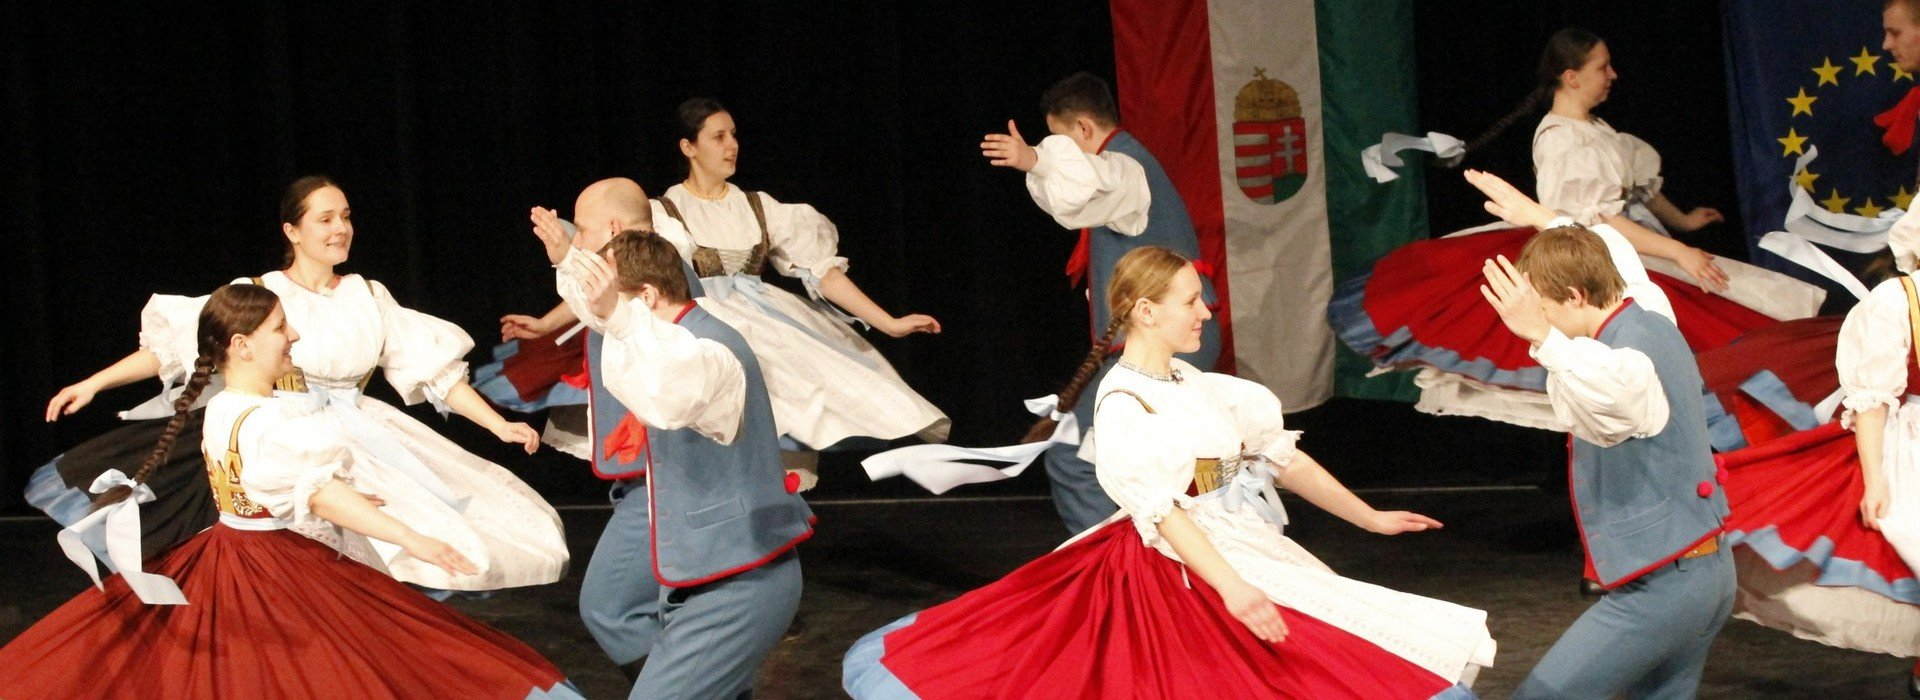 Folklore Programs - Budapest Events